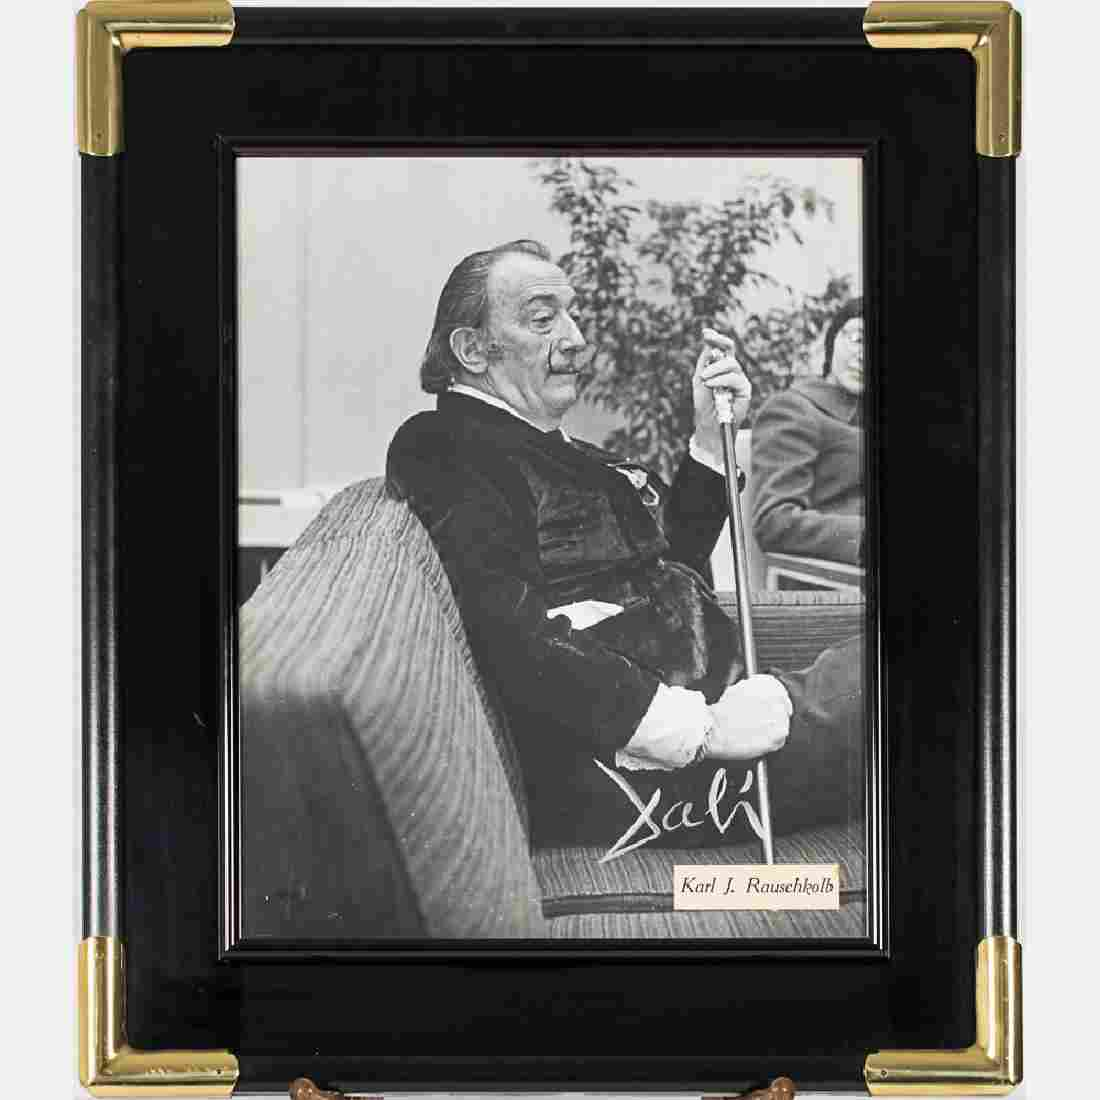 A Signed Photograph of Salvador Dali (1904-1989) by